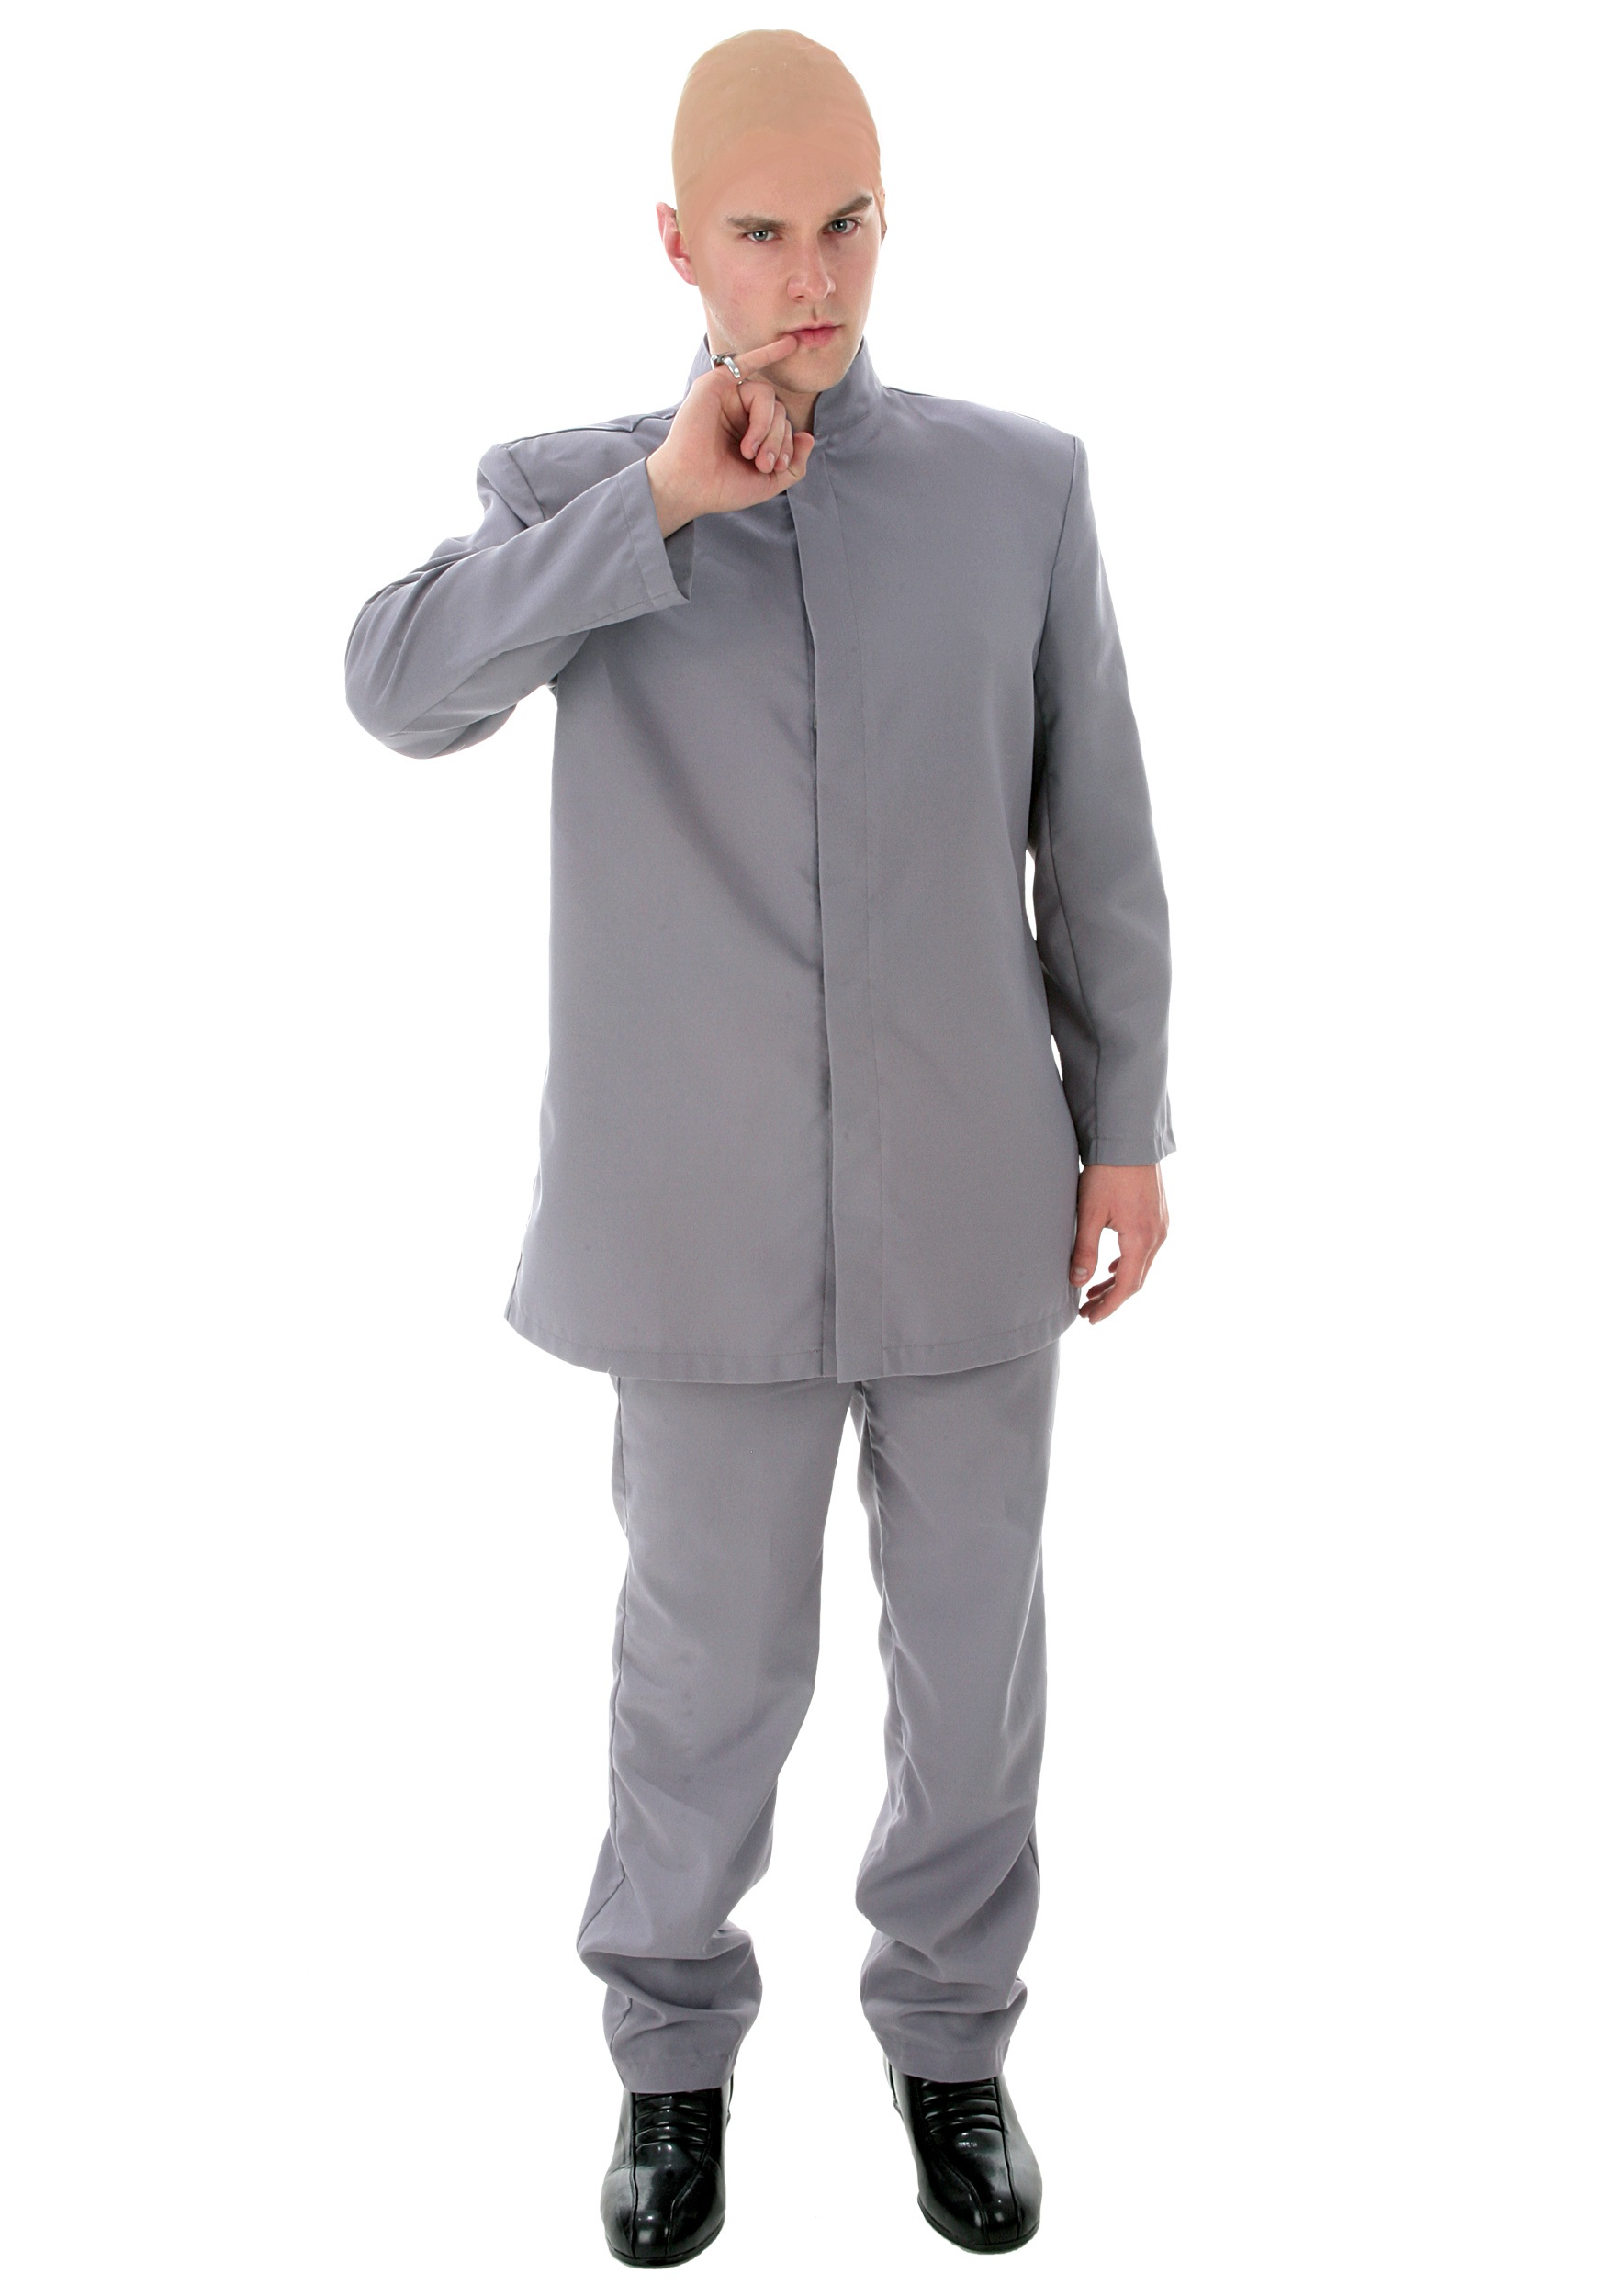 plus size sinful doctor costume - movie character halloween costumes